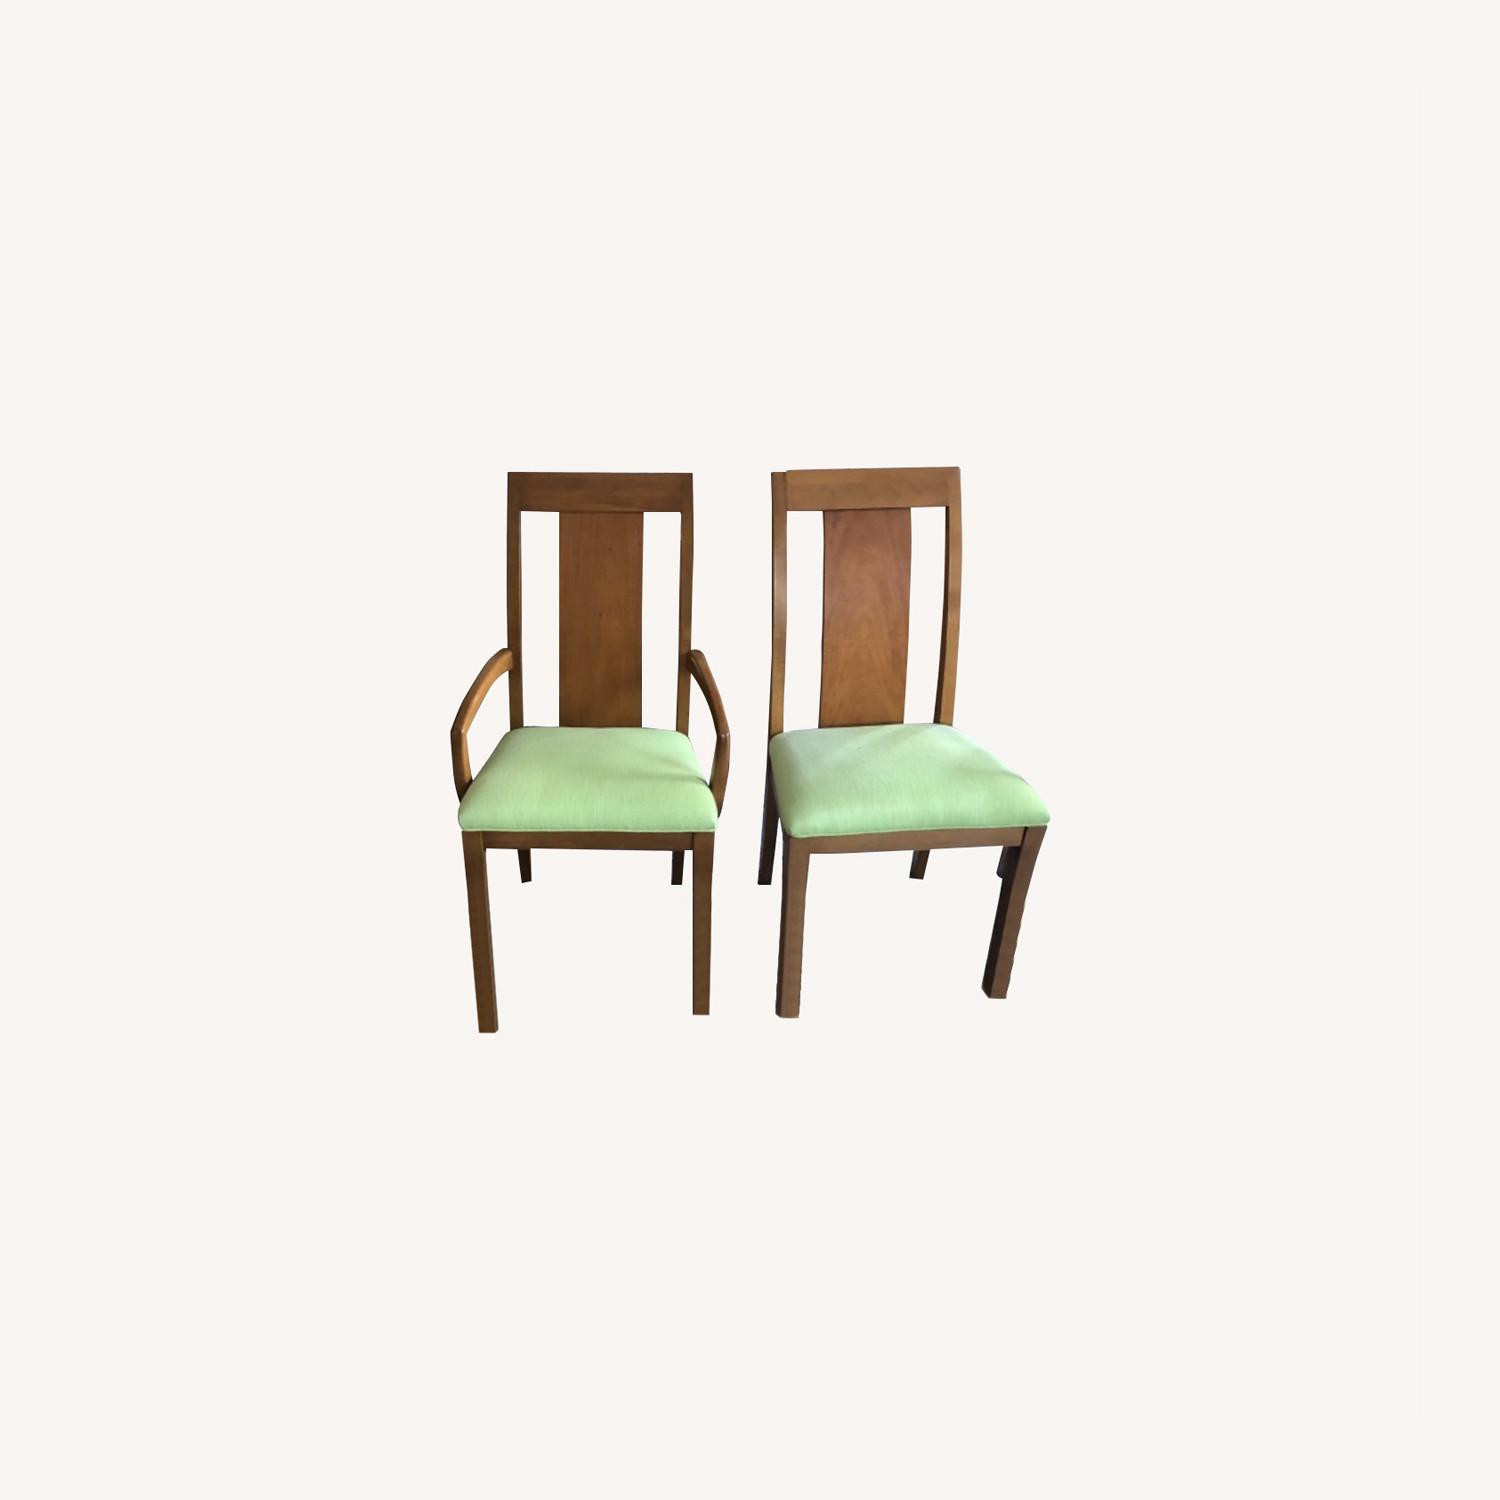 Ethan Allen High Back Dining Chair Set - image-0